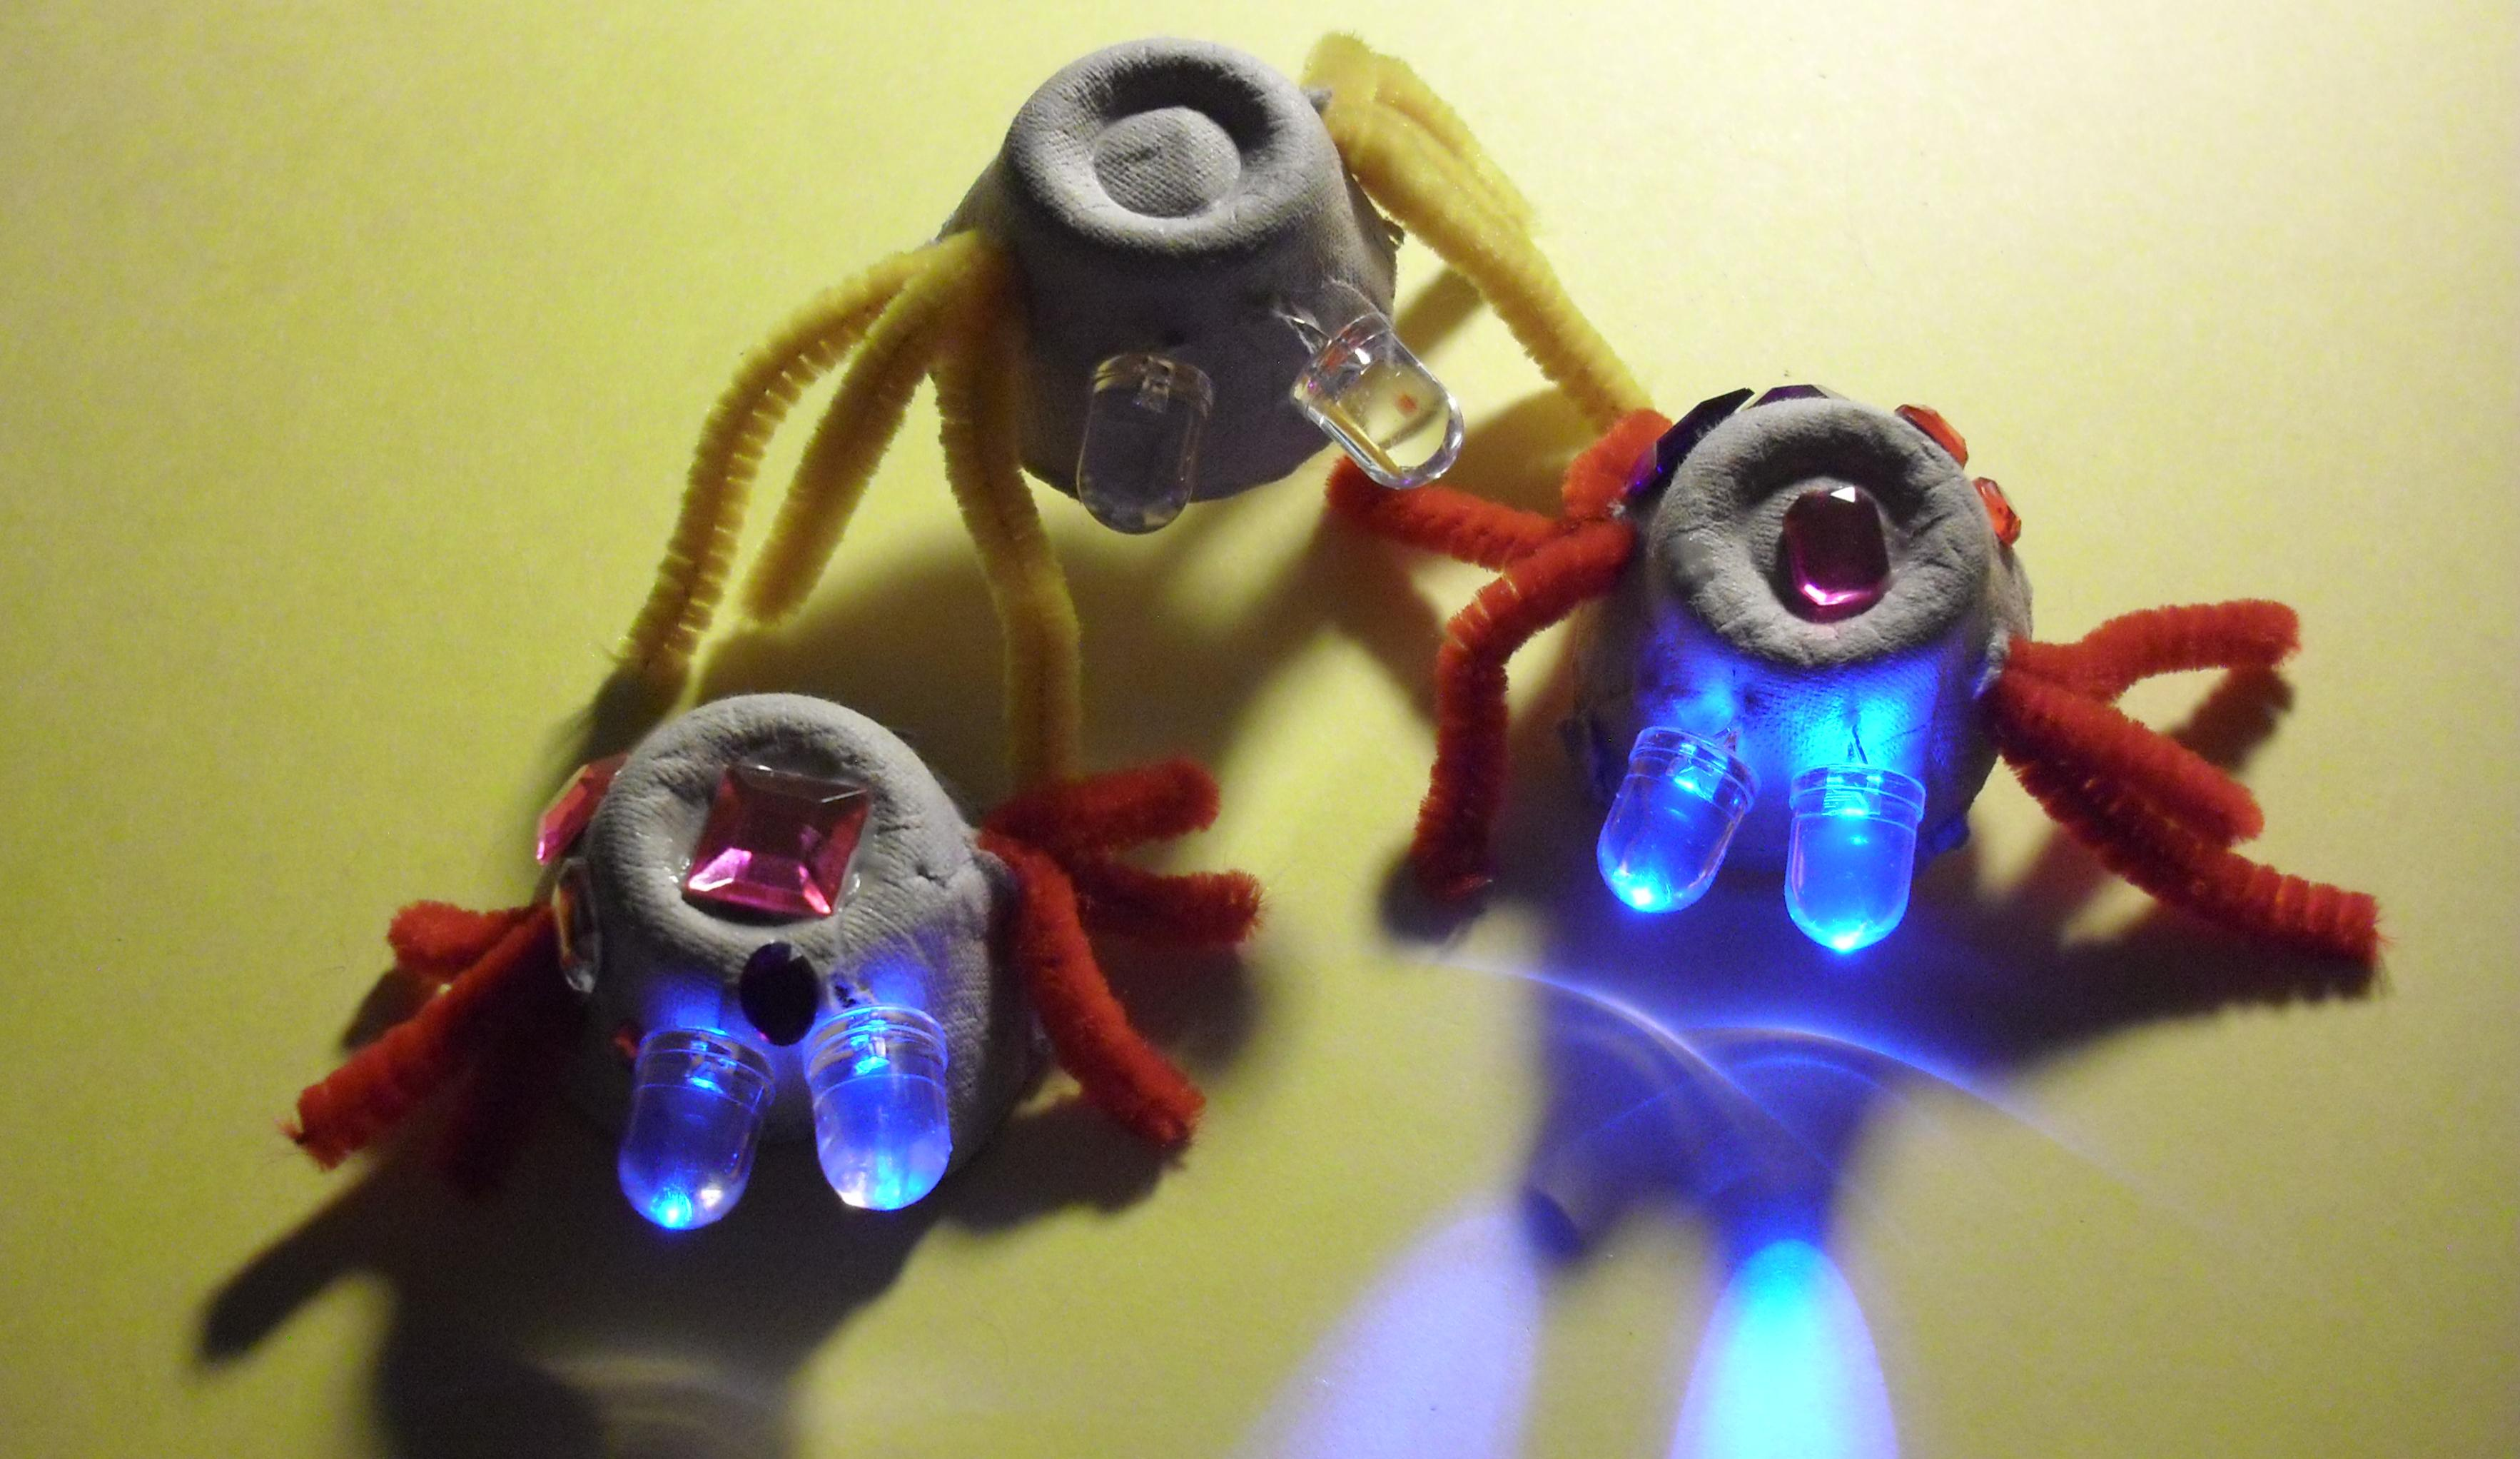 Led bugs an easy craft project for children therczar for Simple handicraft project